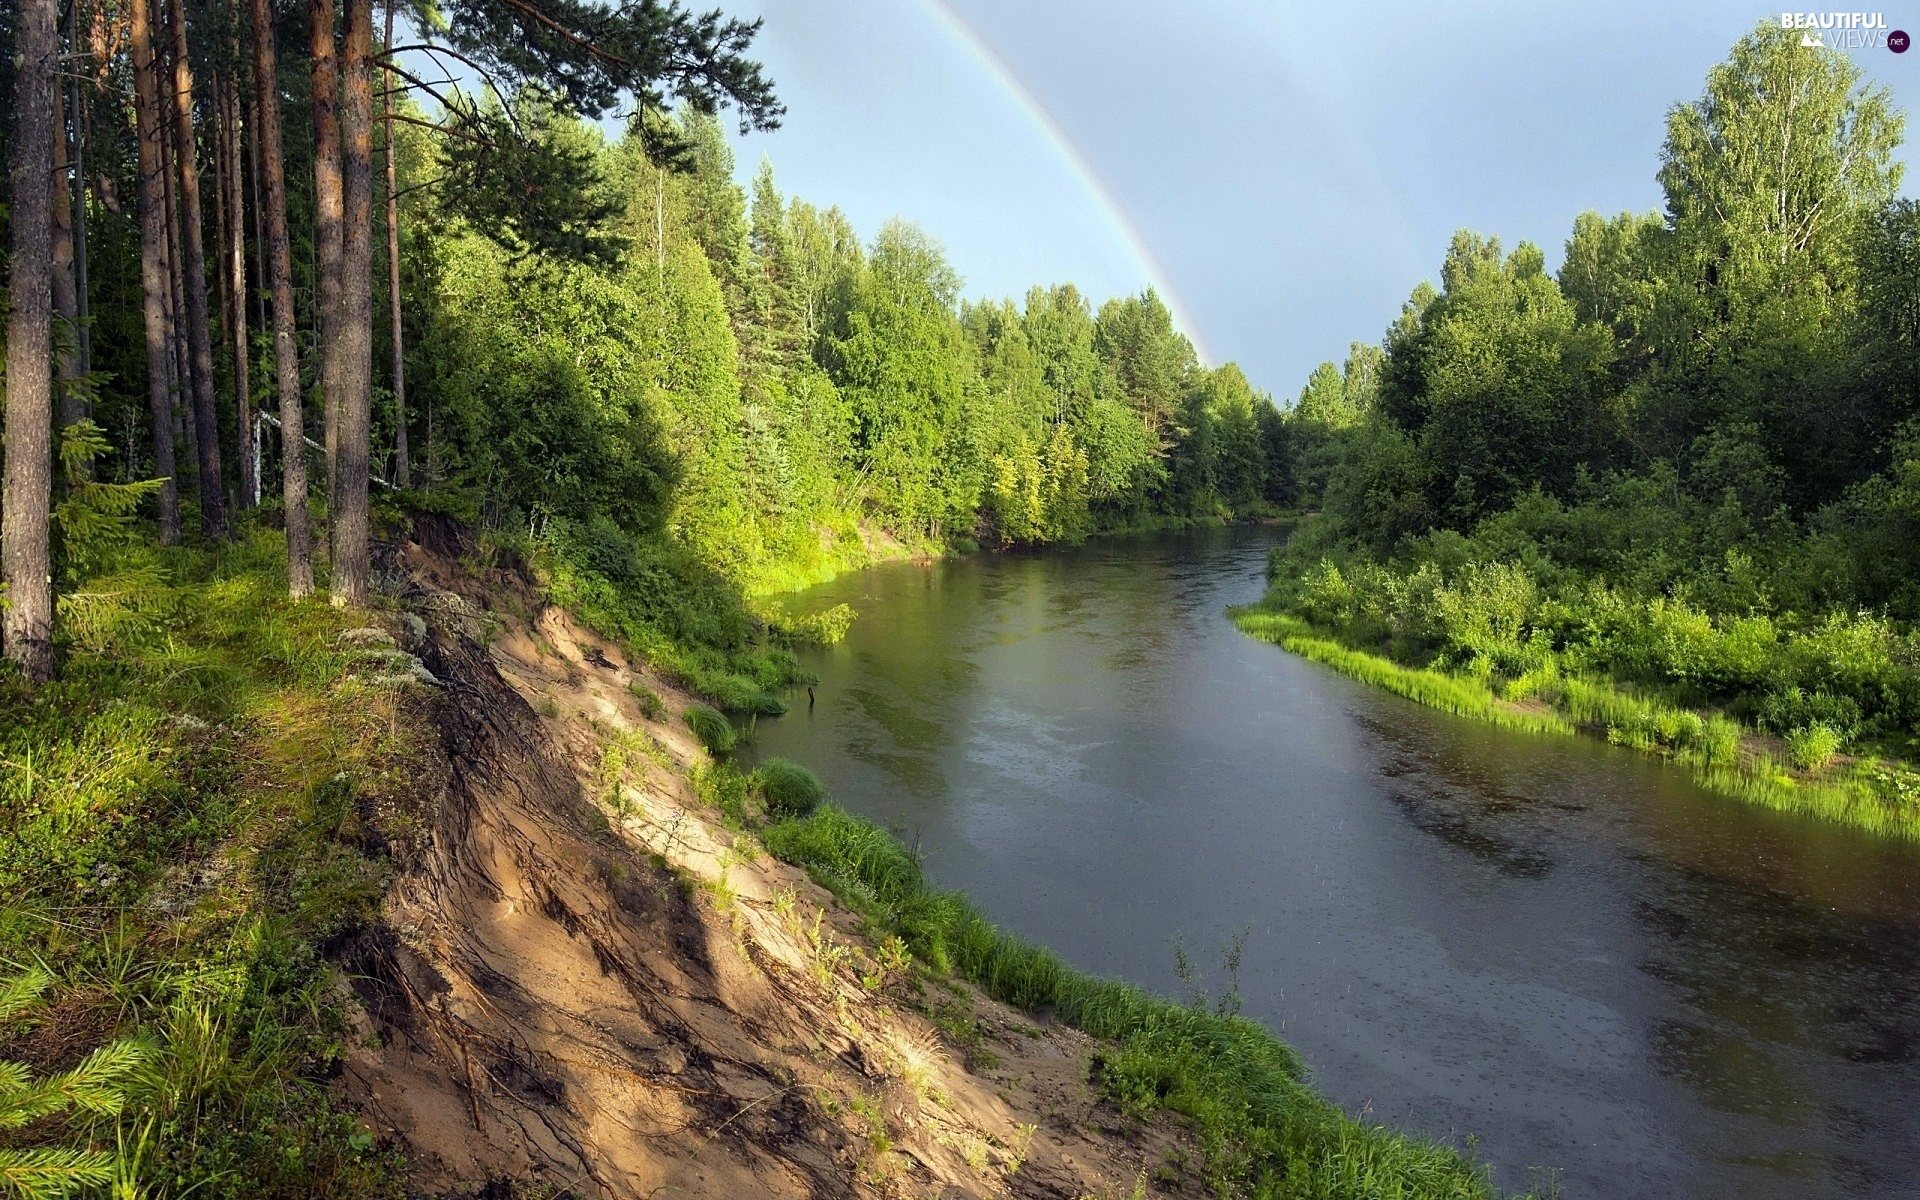 River, scarp, Great Rainbows, forest